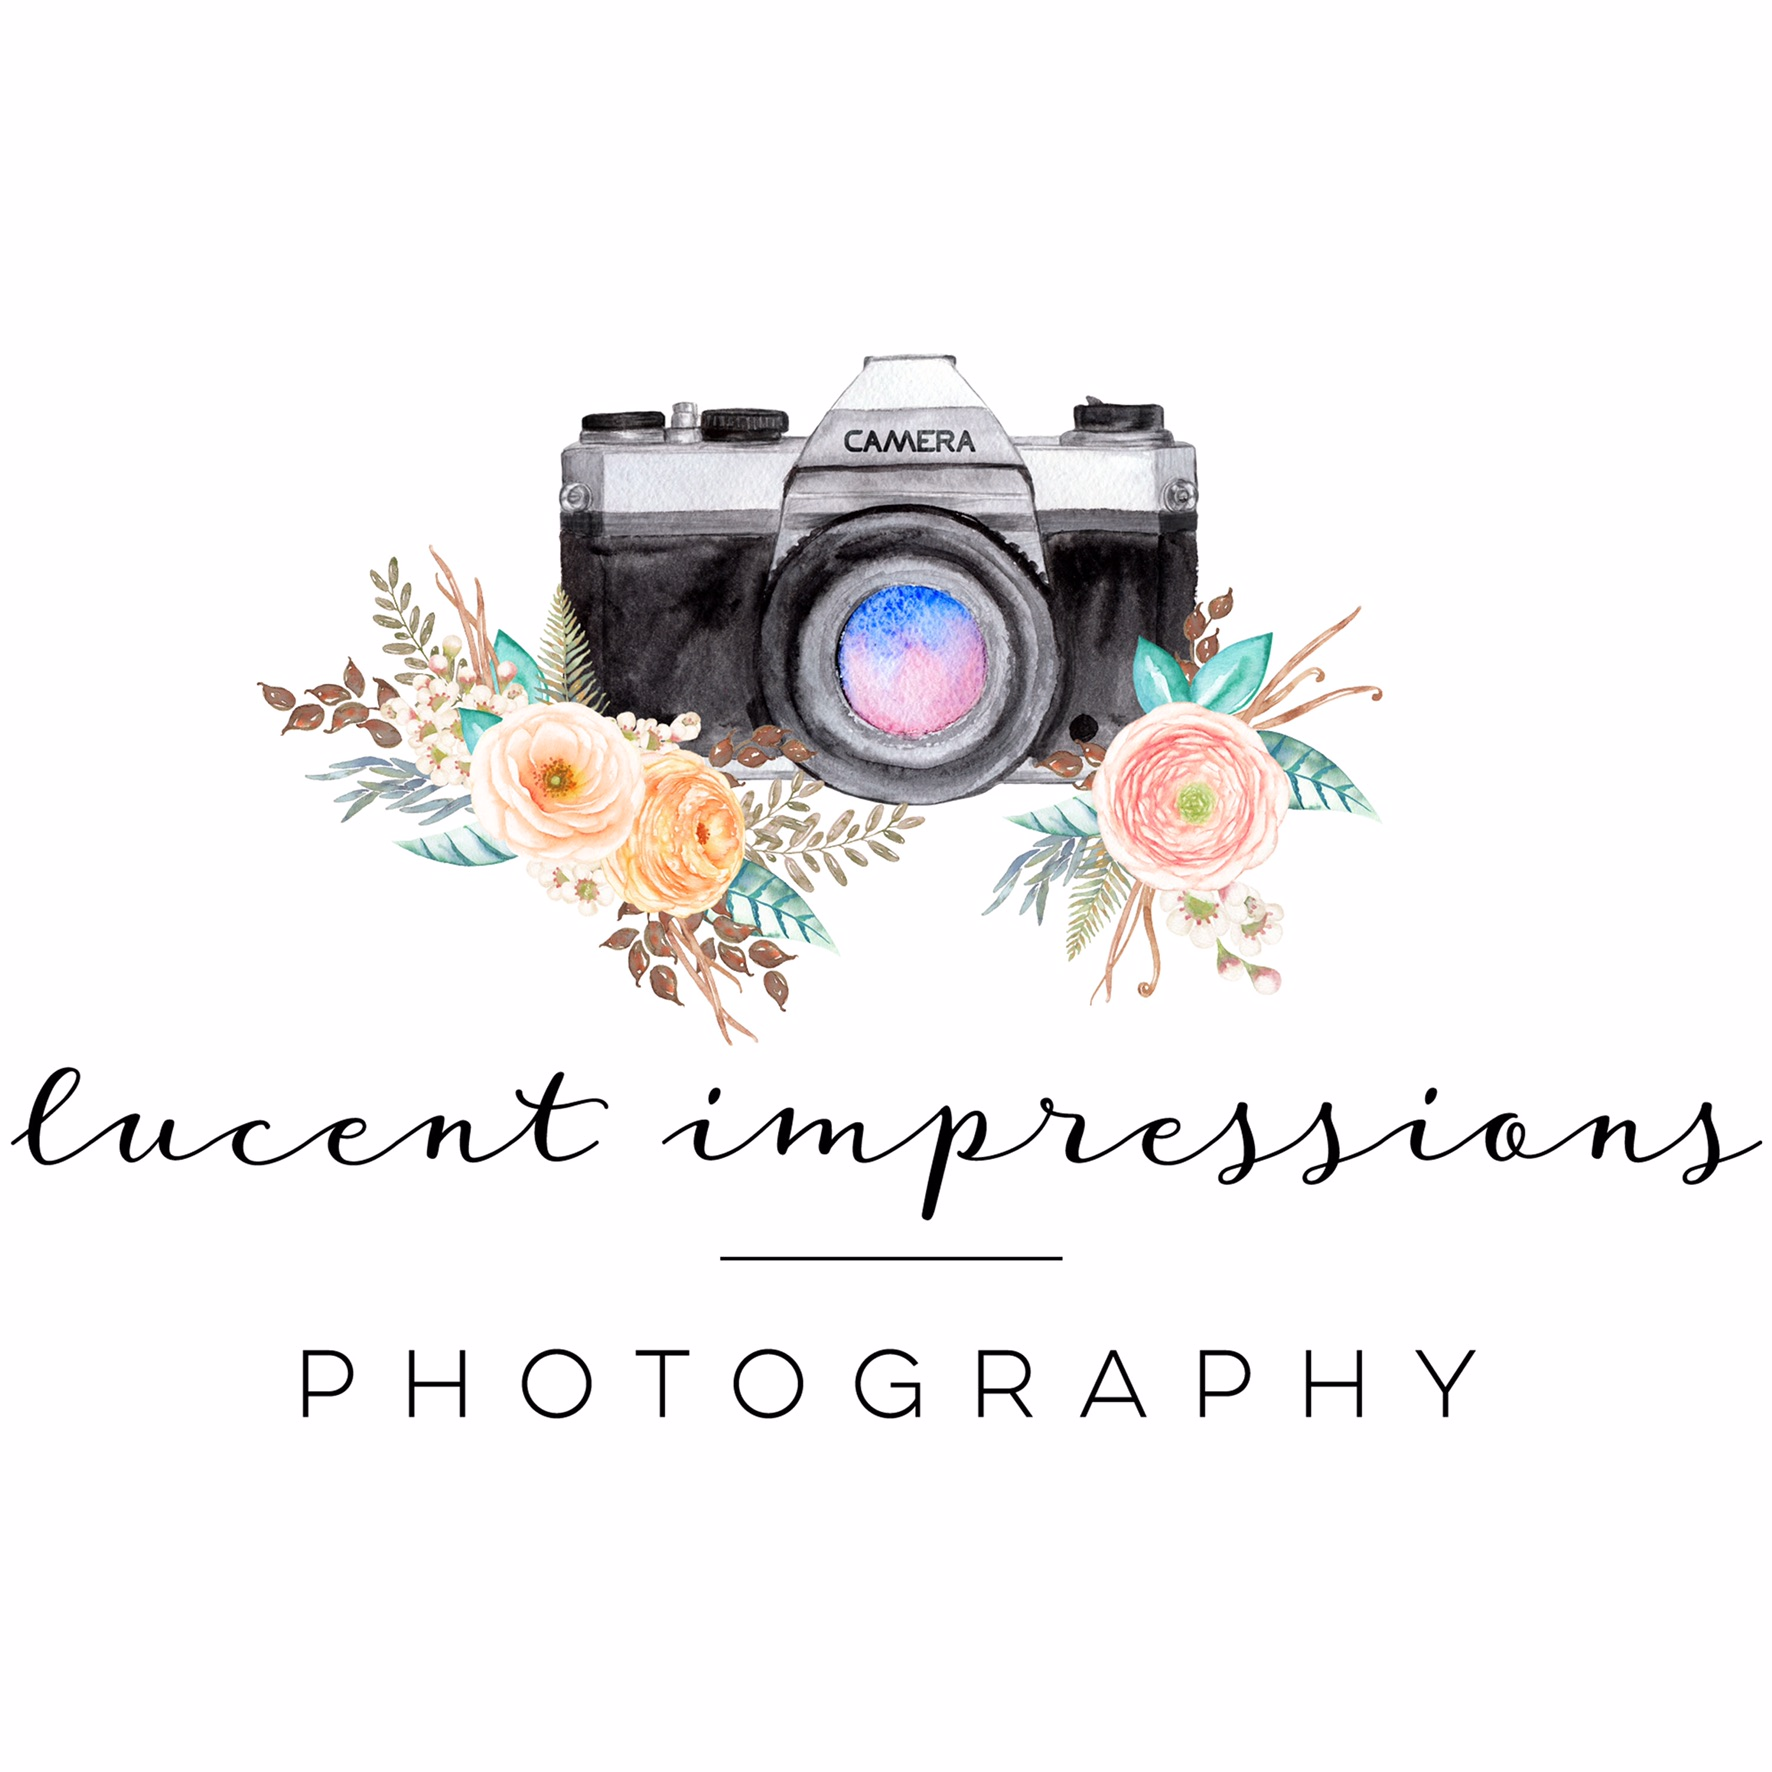 Lucent Impressions Photography image 5